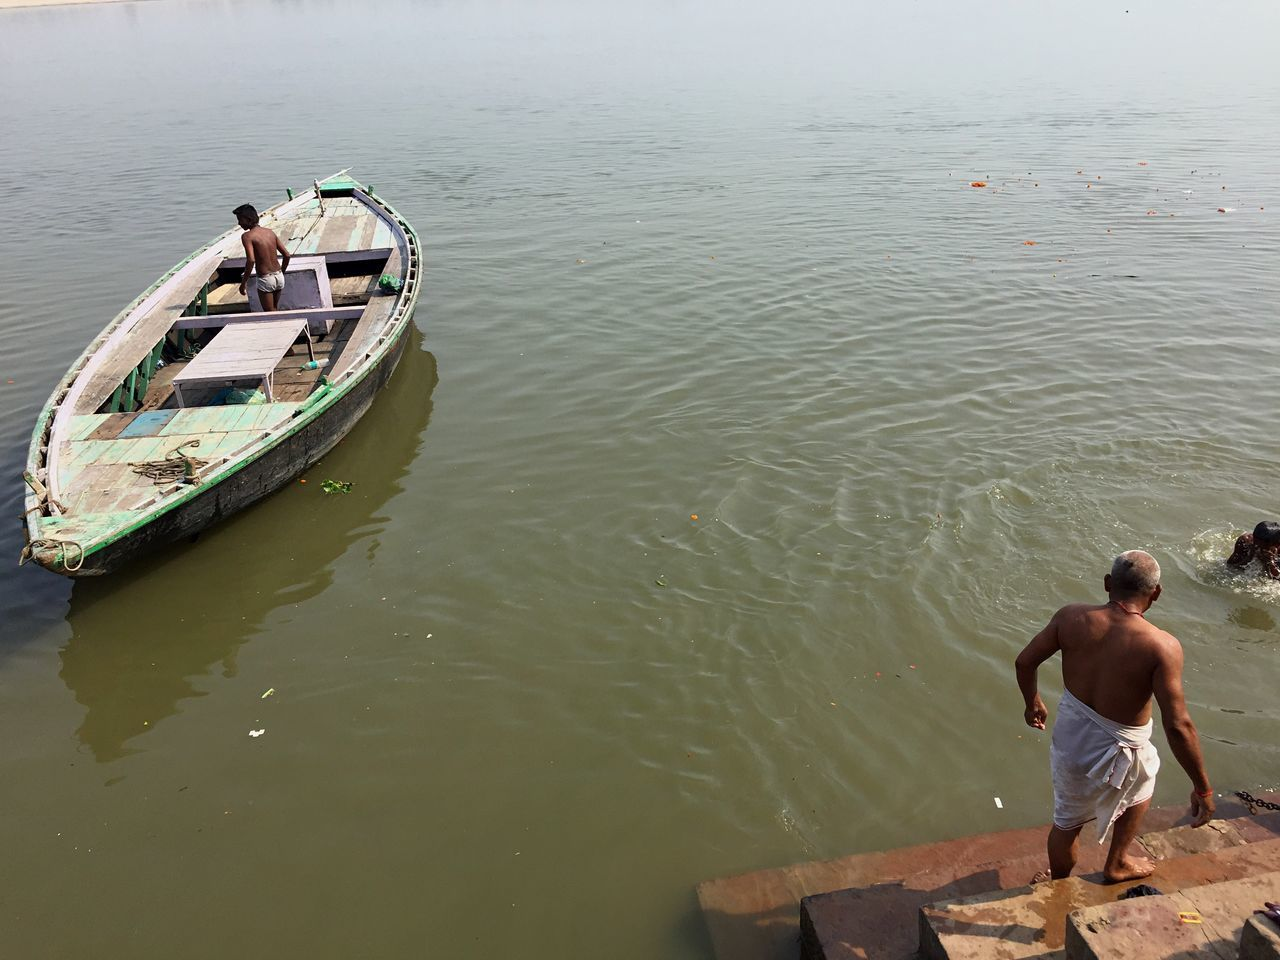 Ganges River Ganges Lifestyles River Waterfront Varanasi Varanasi, India Ganges, Indian Lifestyle And Culture, Bathing In The Ganges, India